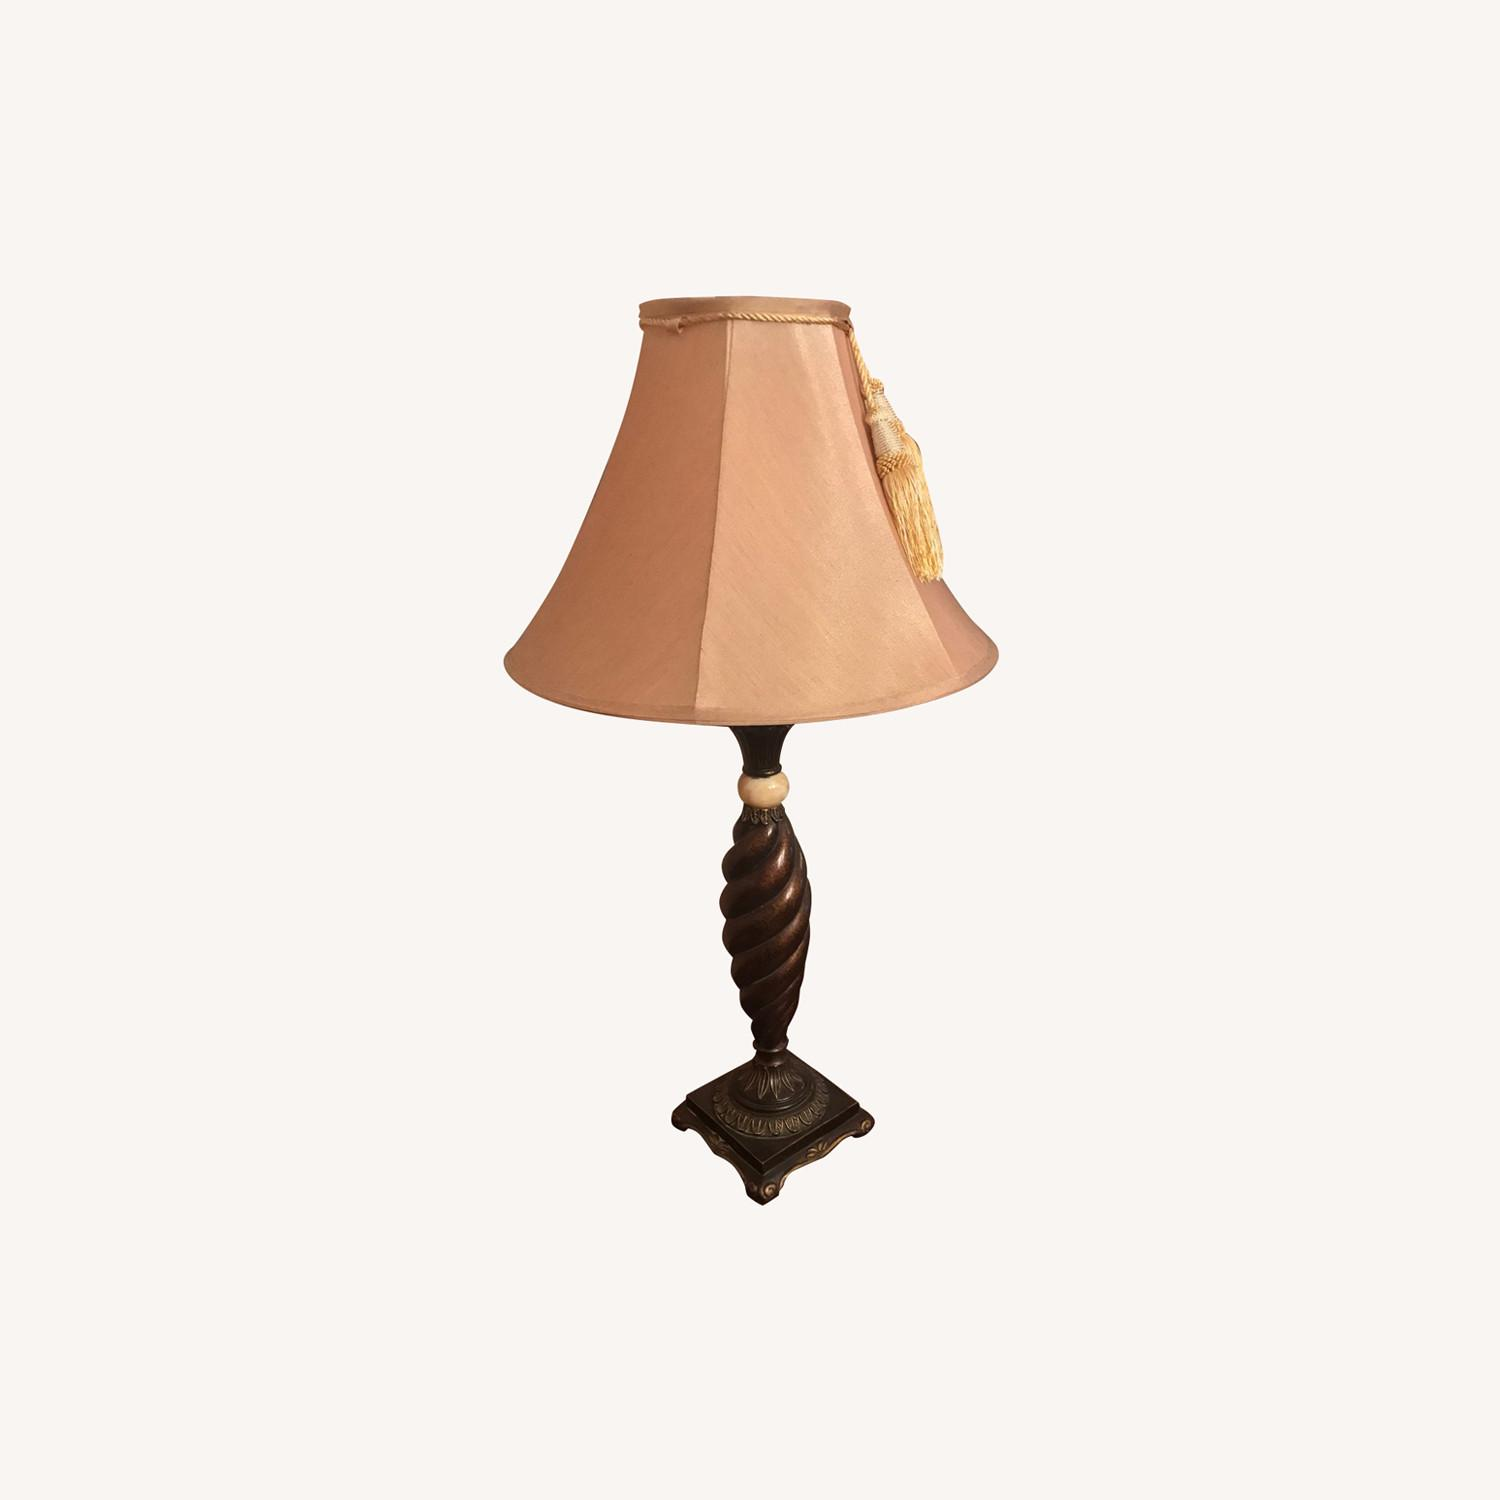 Raymour & Flanigan Table Lamps - image-0